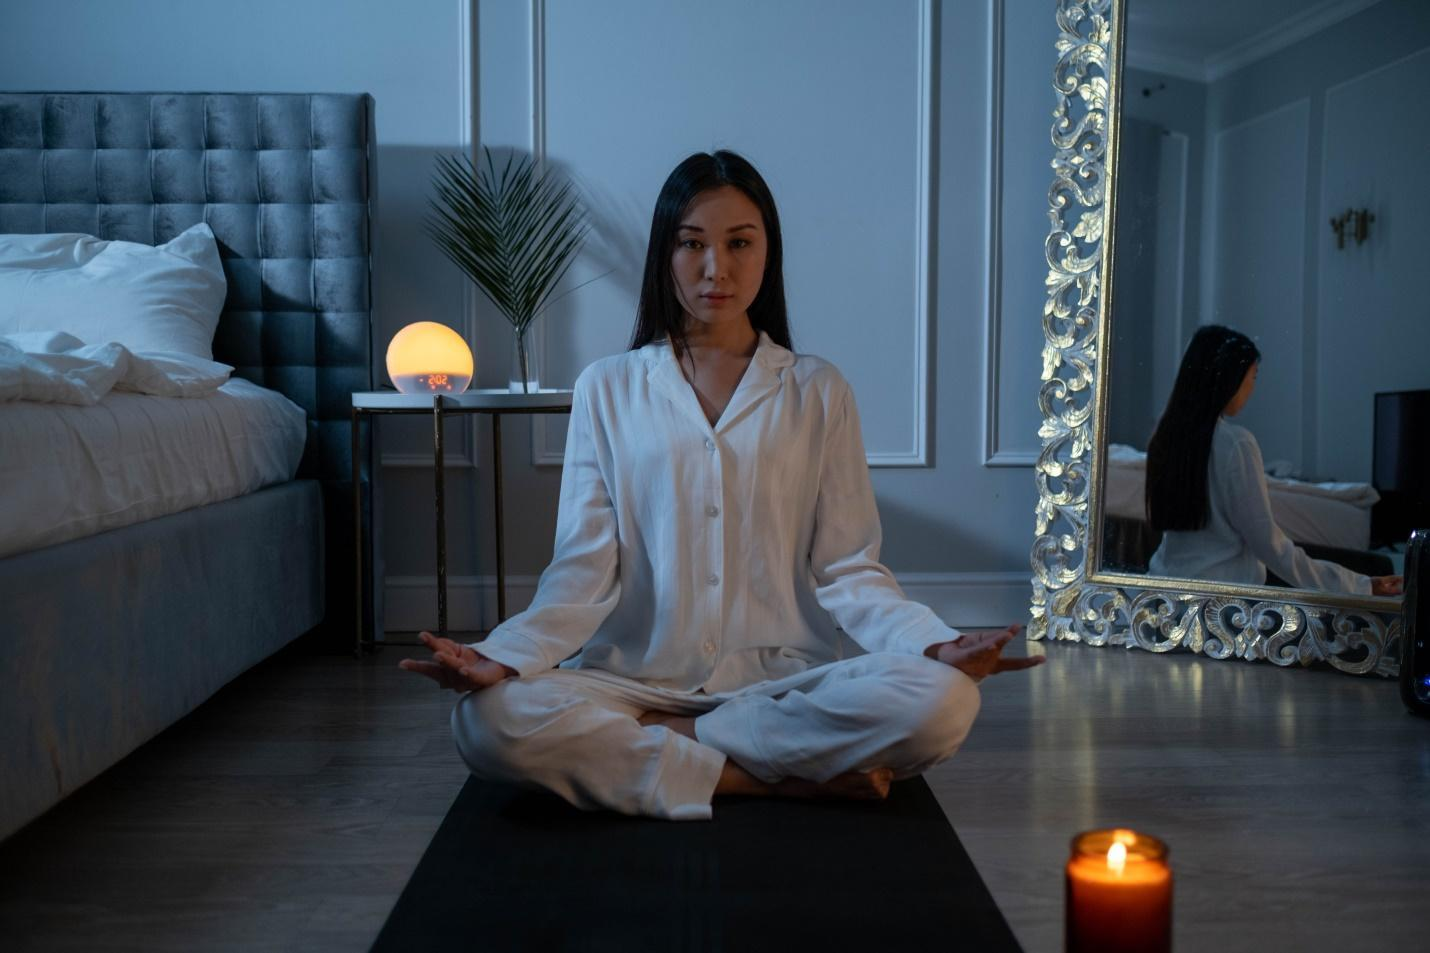 Woman practicing relaxation techniques